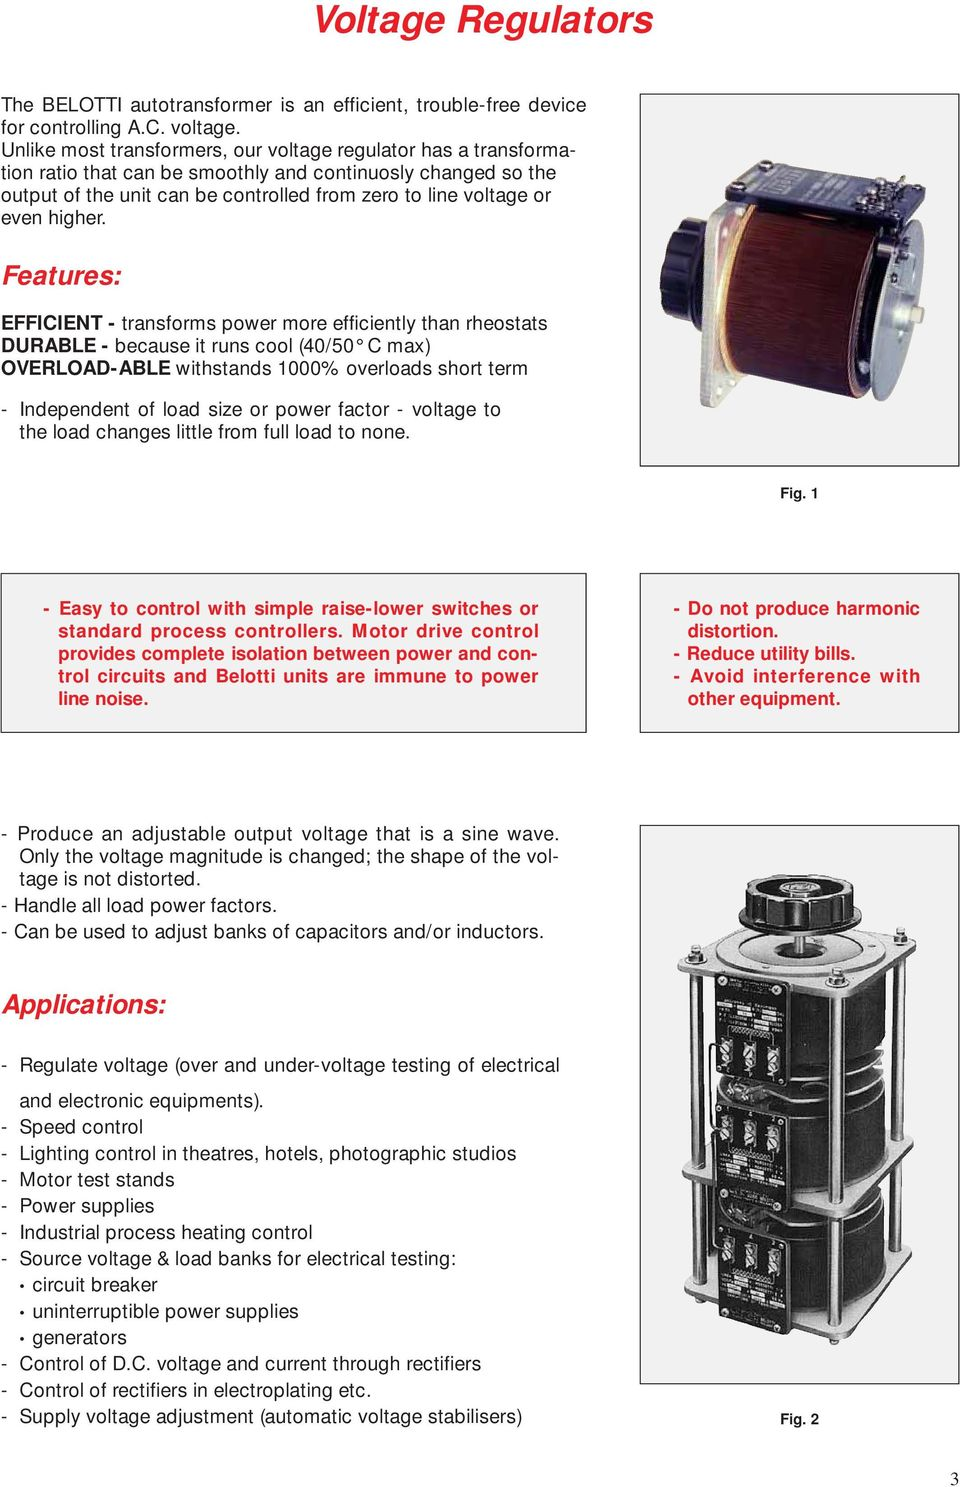 Leader In Voltage Regulators Since Pdf Power Supplies And For Lowvoltages Heaters Higher